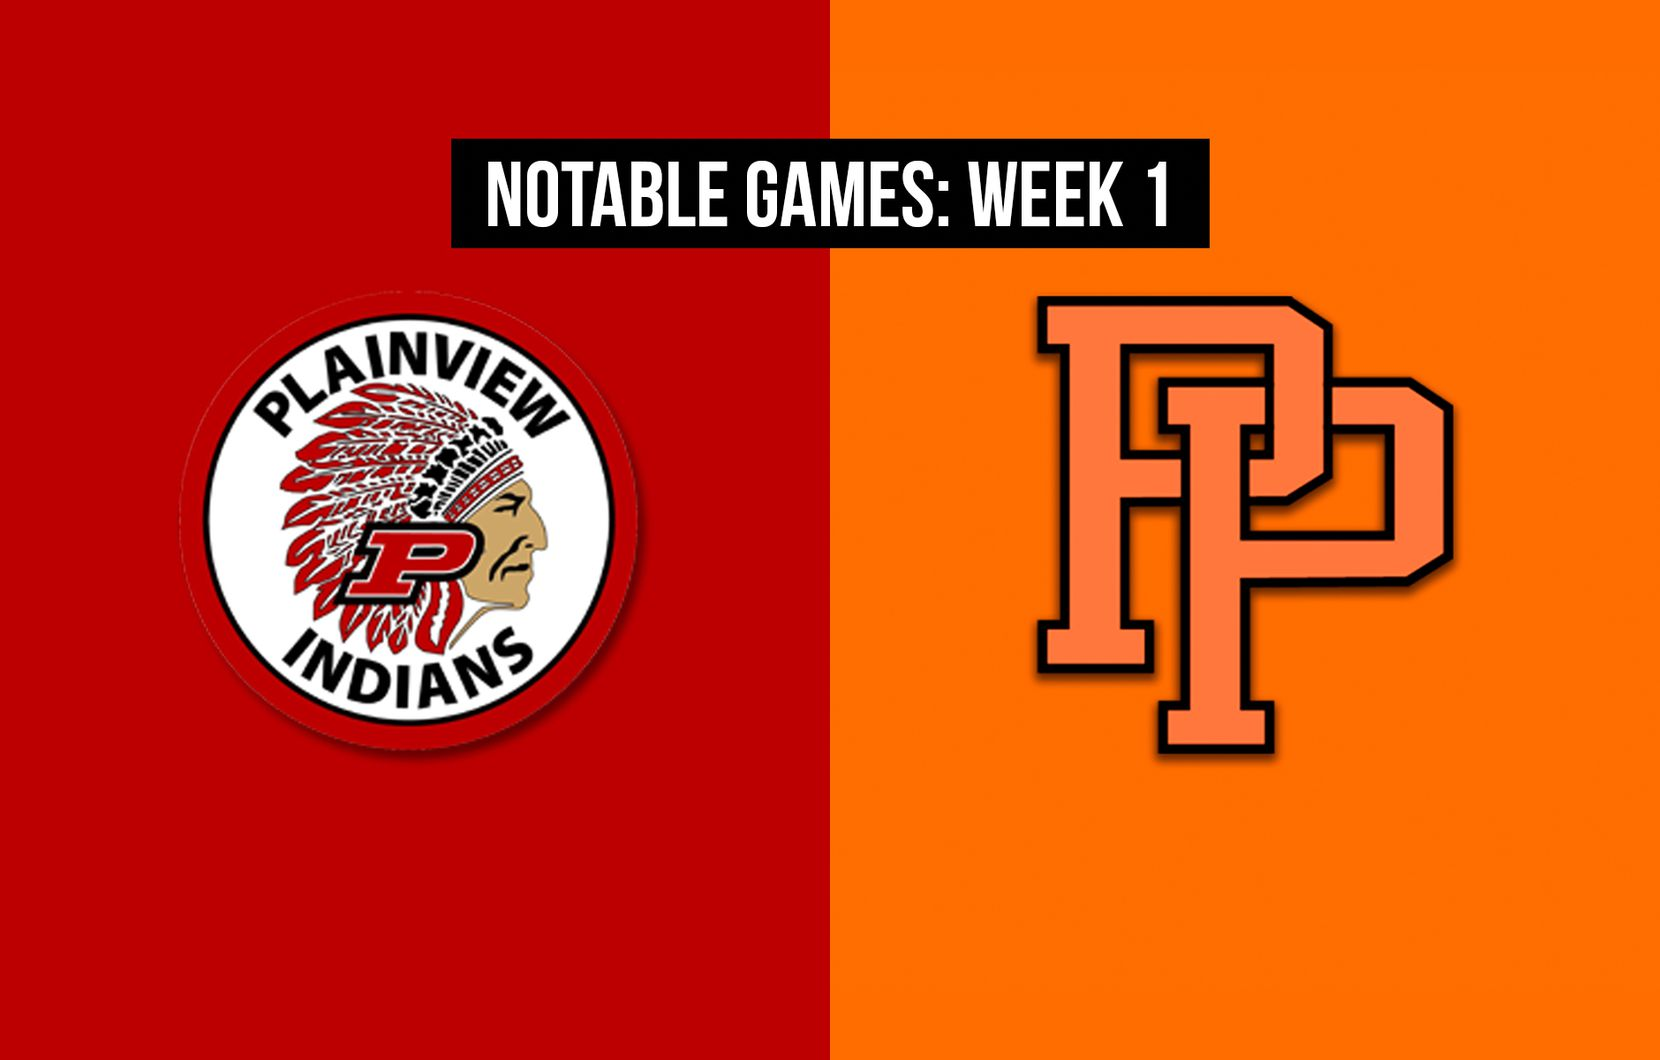 Notable games, Week 1 of the 2020 season: Plainview vs. Pilot Point.